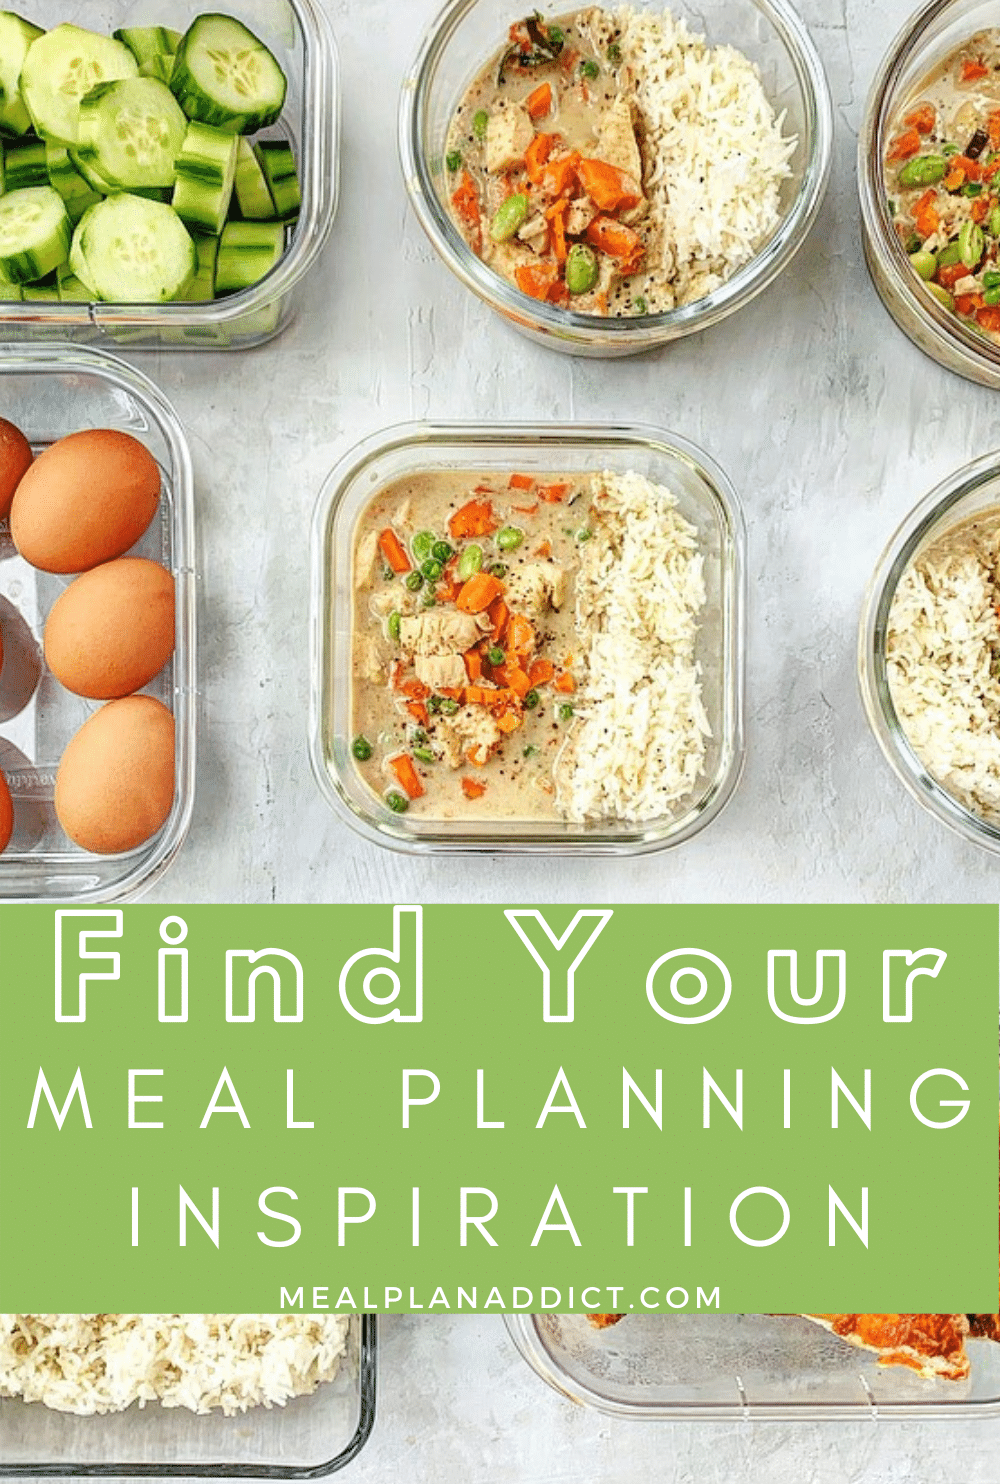 Find Your Meal Planning Inspiration